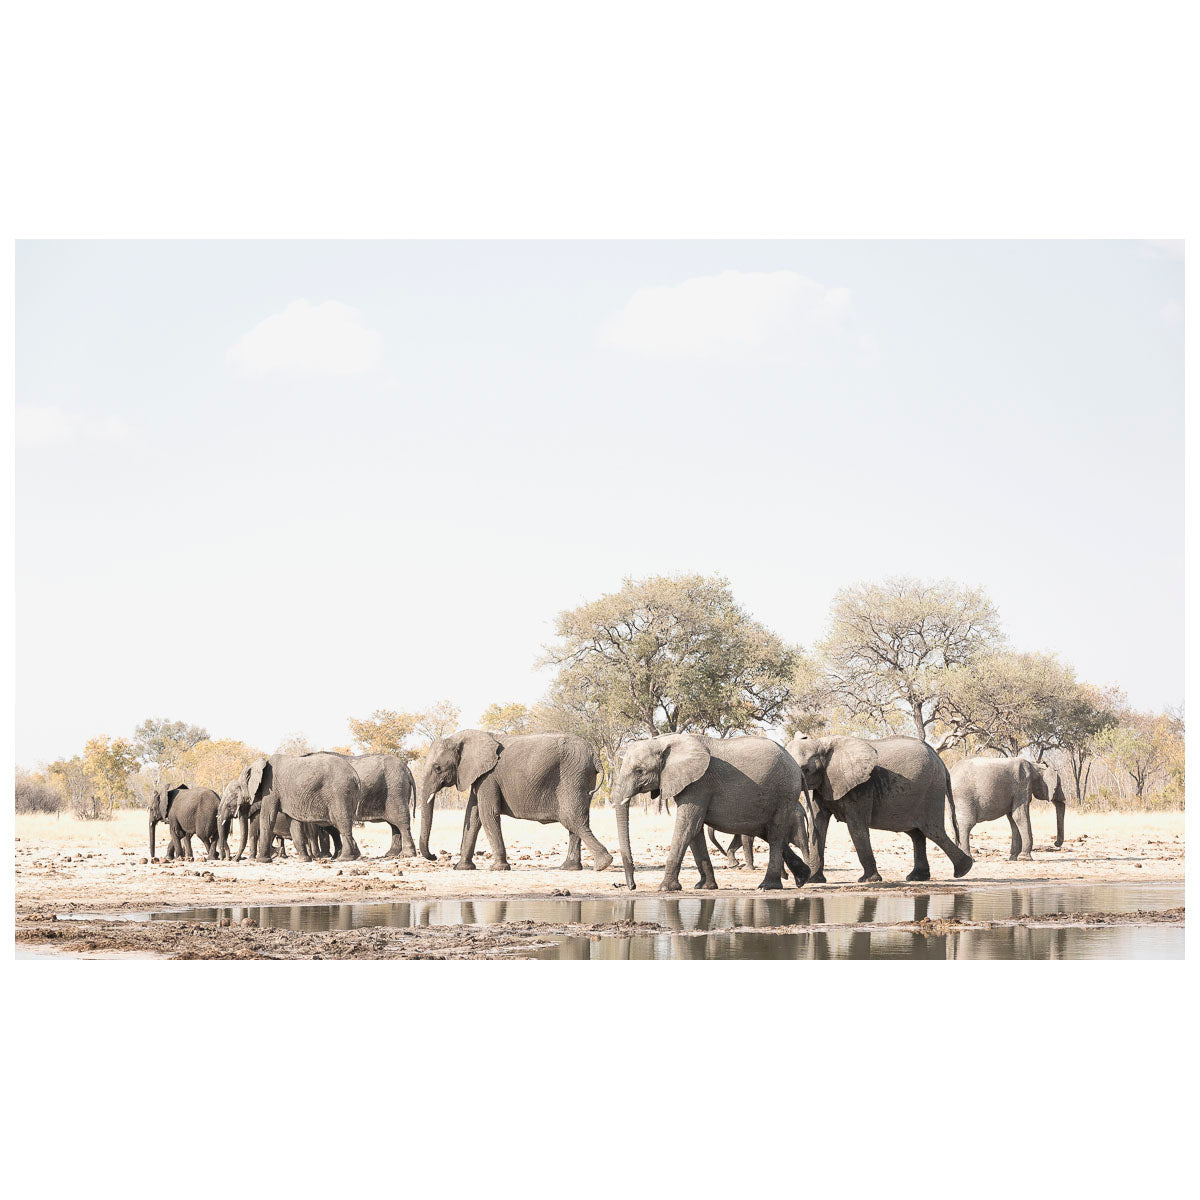 ELEPHANT FAMILY by Jackie Wild Photography at SARZA. art prints, canvas prints, elephant family, framed canvas, Jackie Wild Photography, paper prints, photography, wall art, wildlife